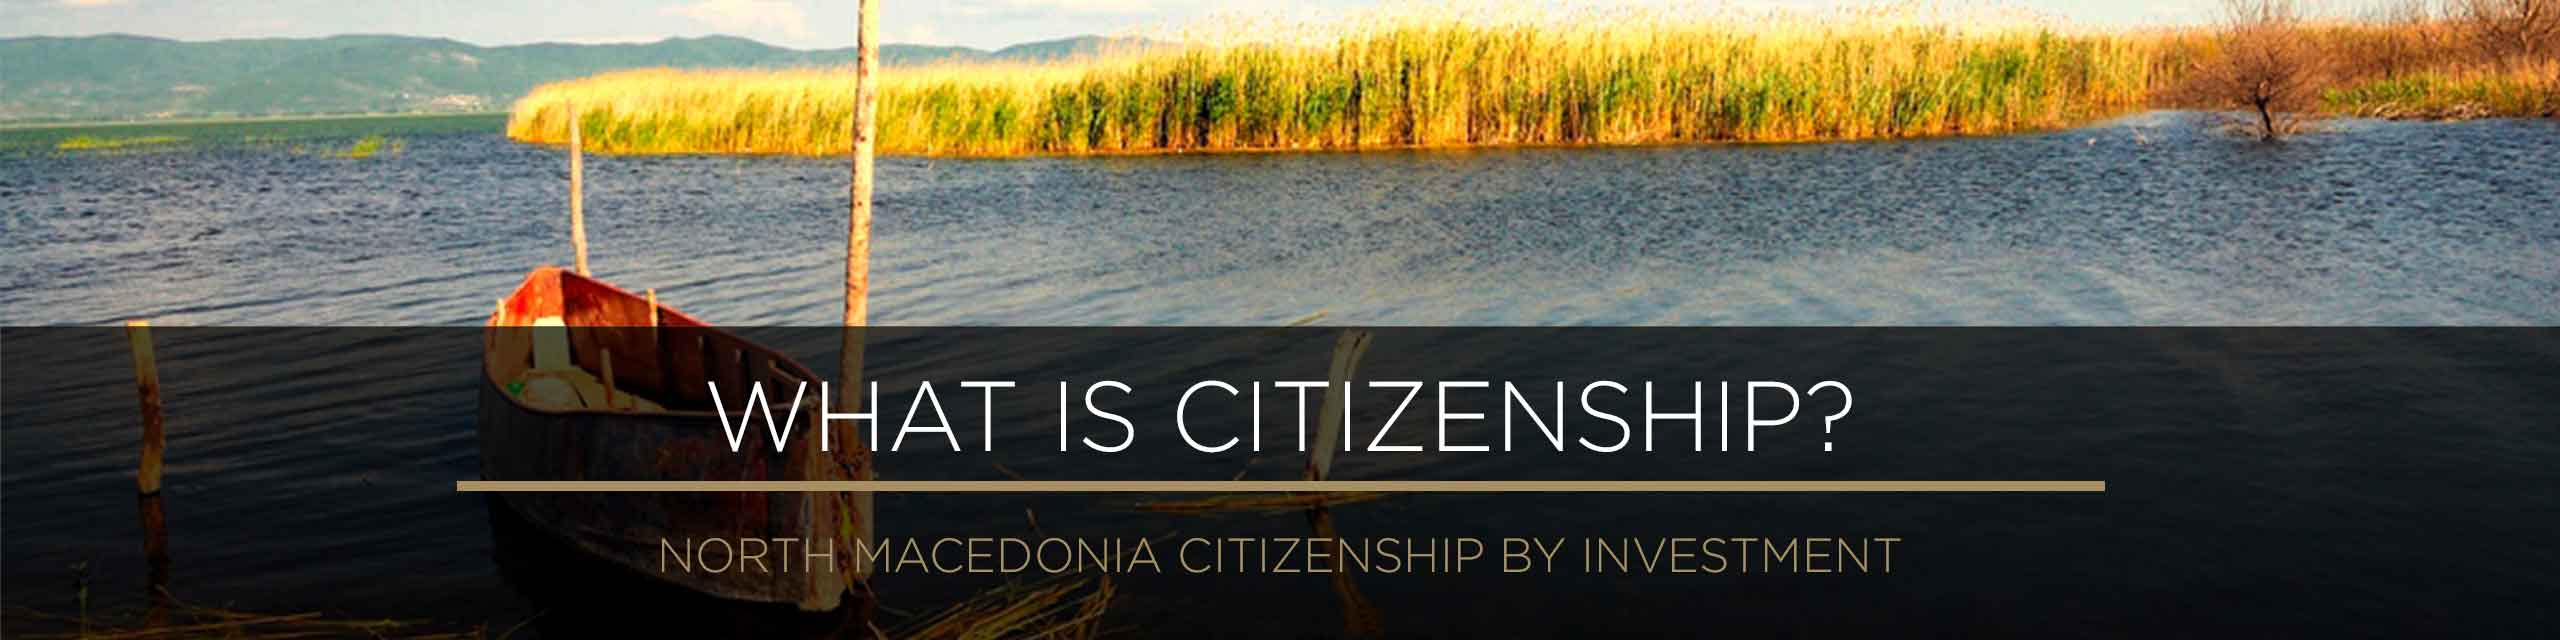 North Macedonia - What is Citizenship?